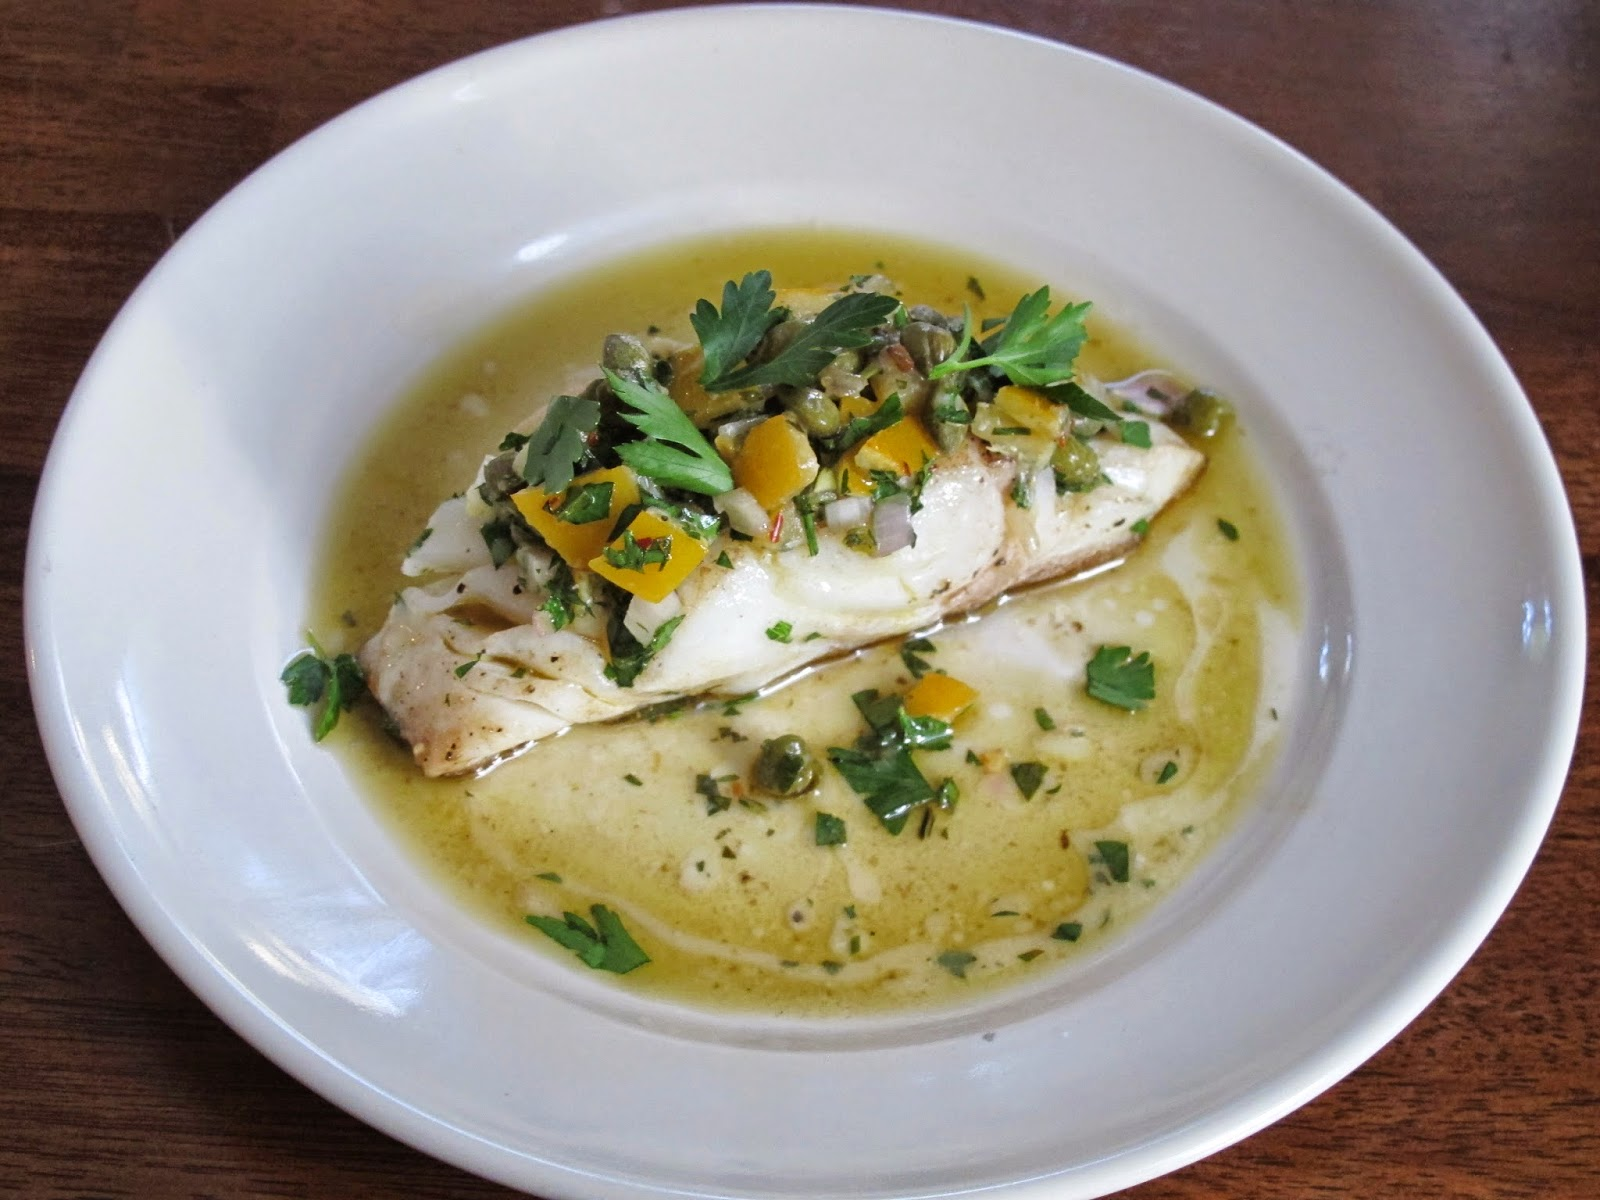 Sprouted Kitchen Cod with Lemon Caper Relish